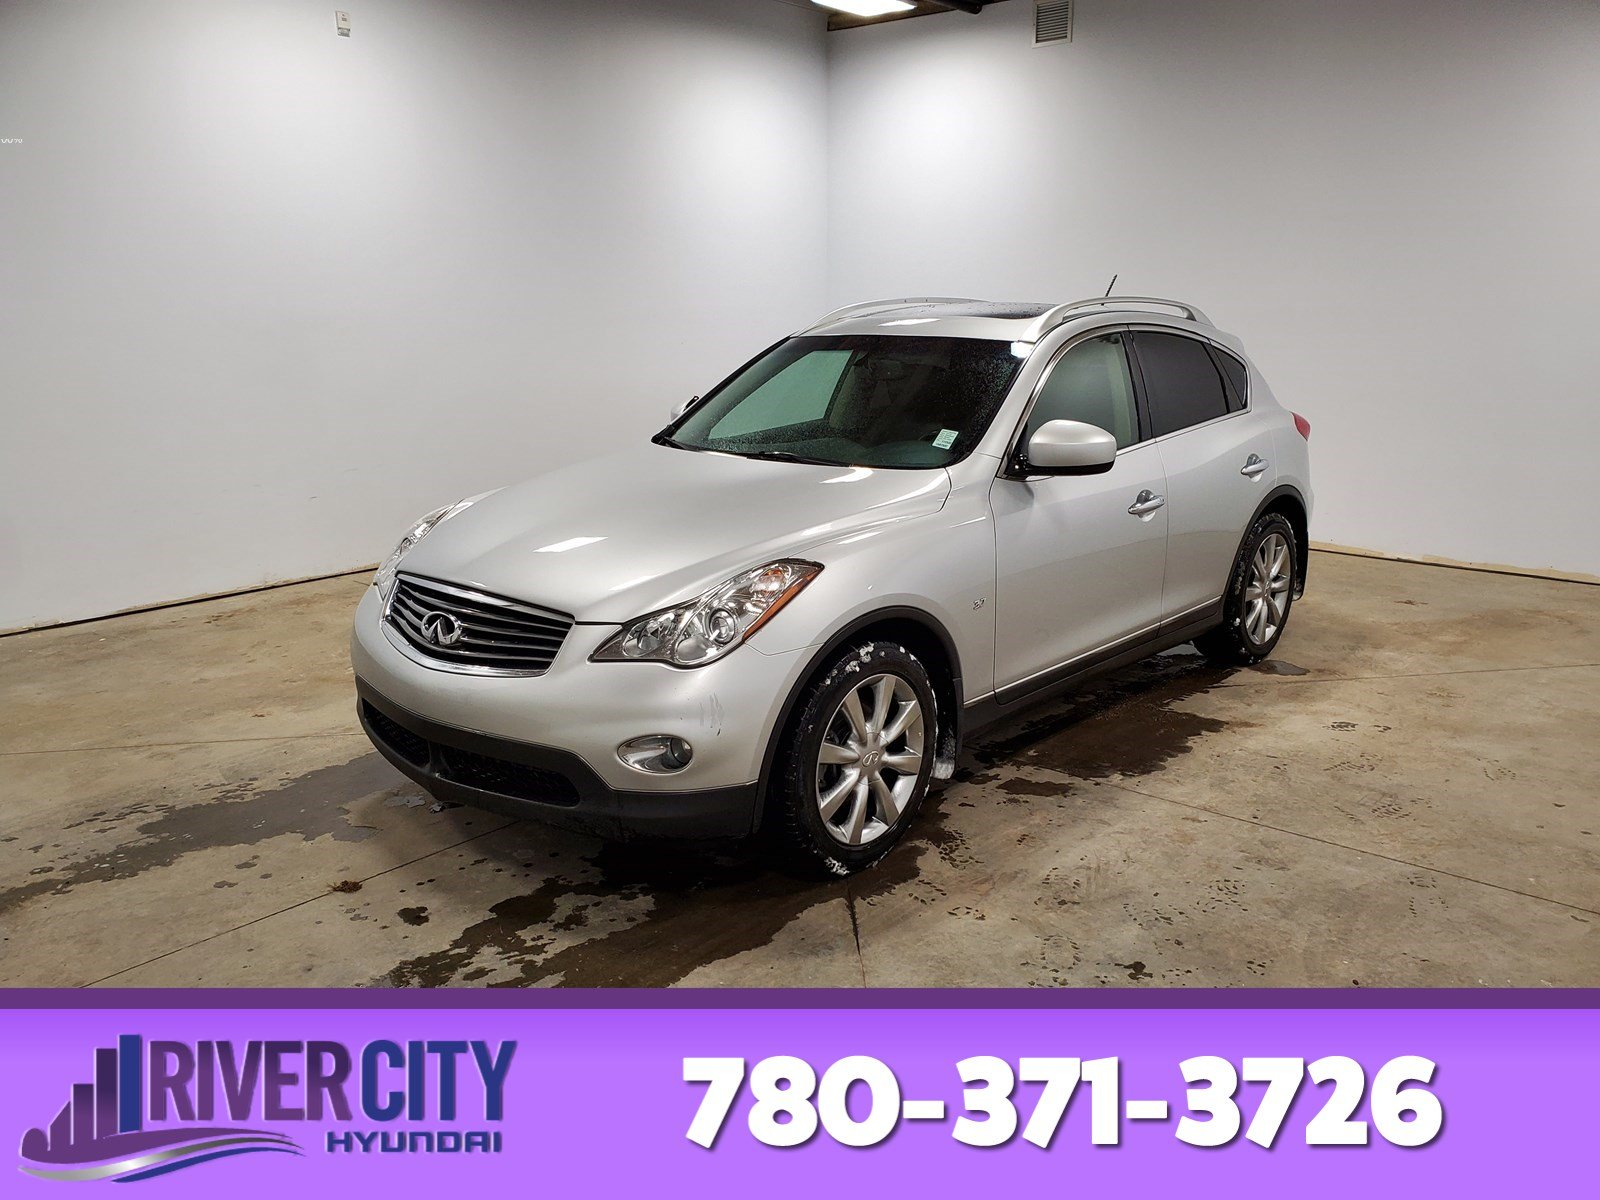 Pre-Owned 2015 INFINITI QX50 AWD Navigation (GPS), Leather, Heated Seats, Sunroof, Back-up Cam, Bluetooth, A/C,